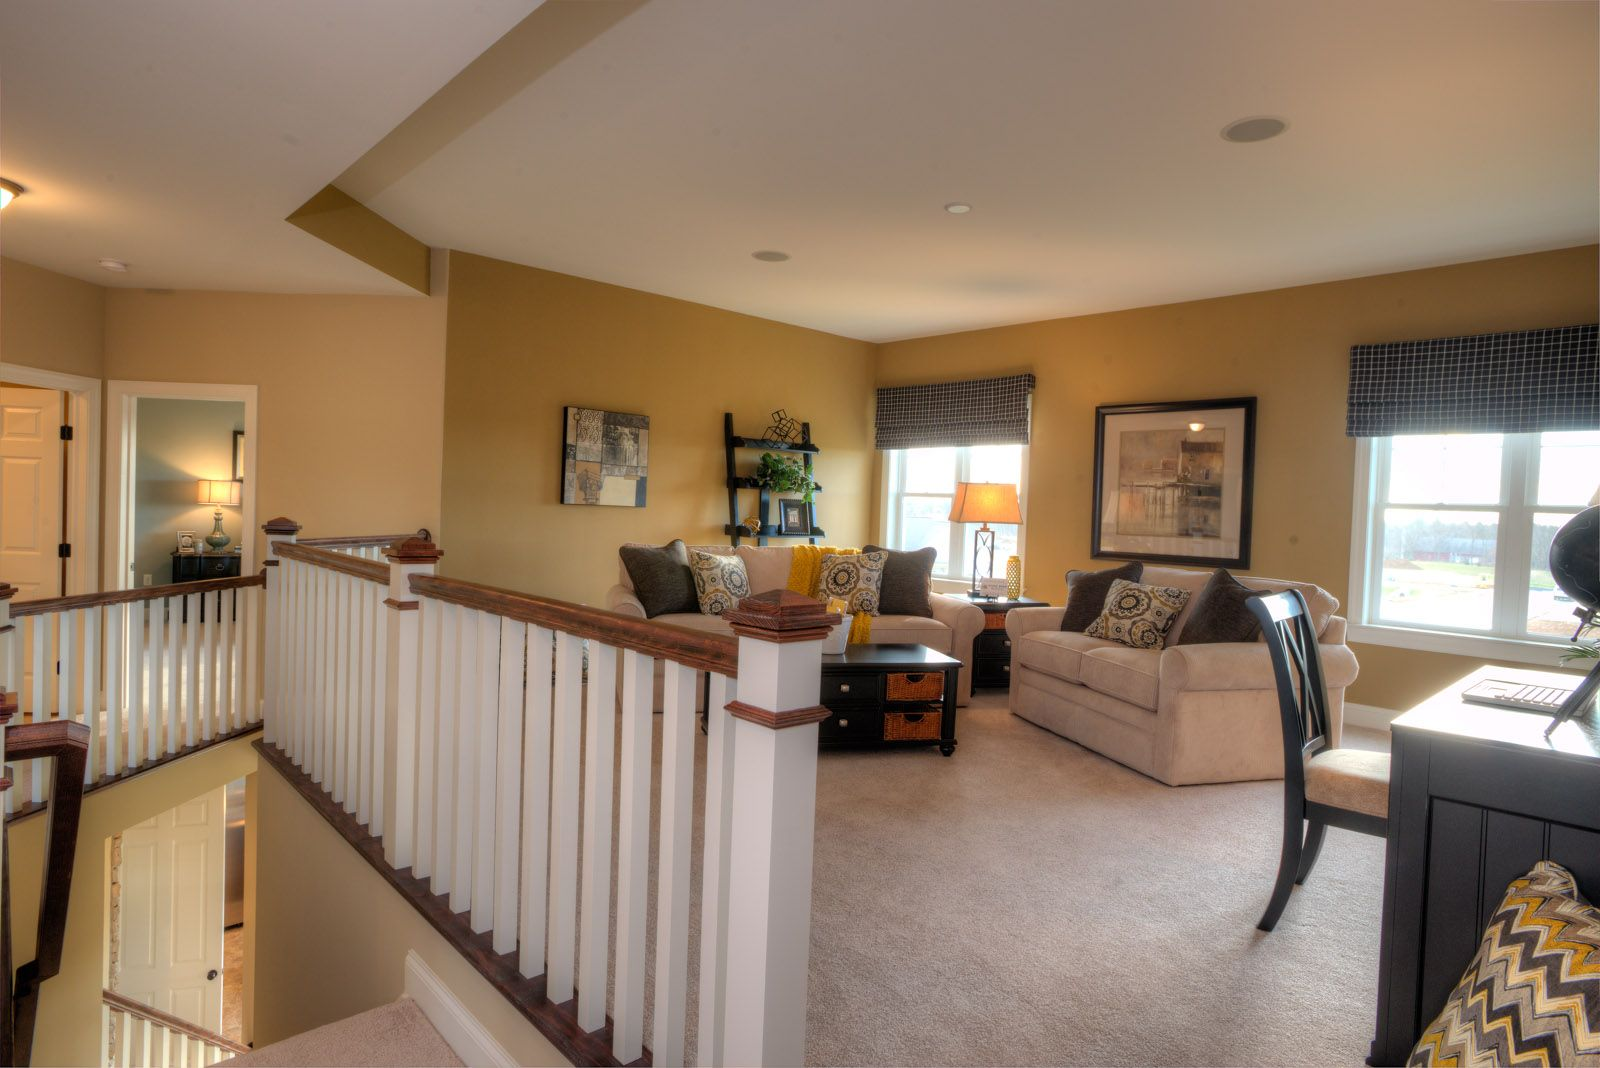 Ious Loft Style 2nd Floor Rec Room With Sherwin Williams Baguette Wall Color Ownalandmark Projectdreamhouse